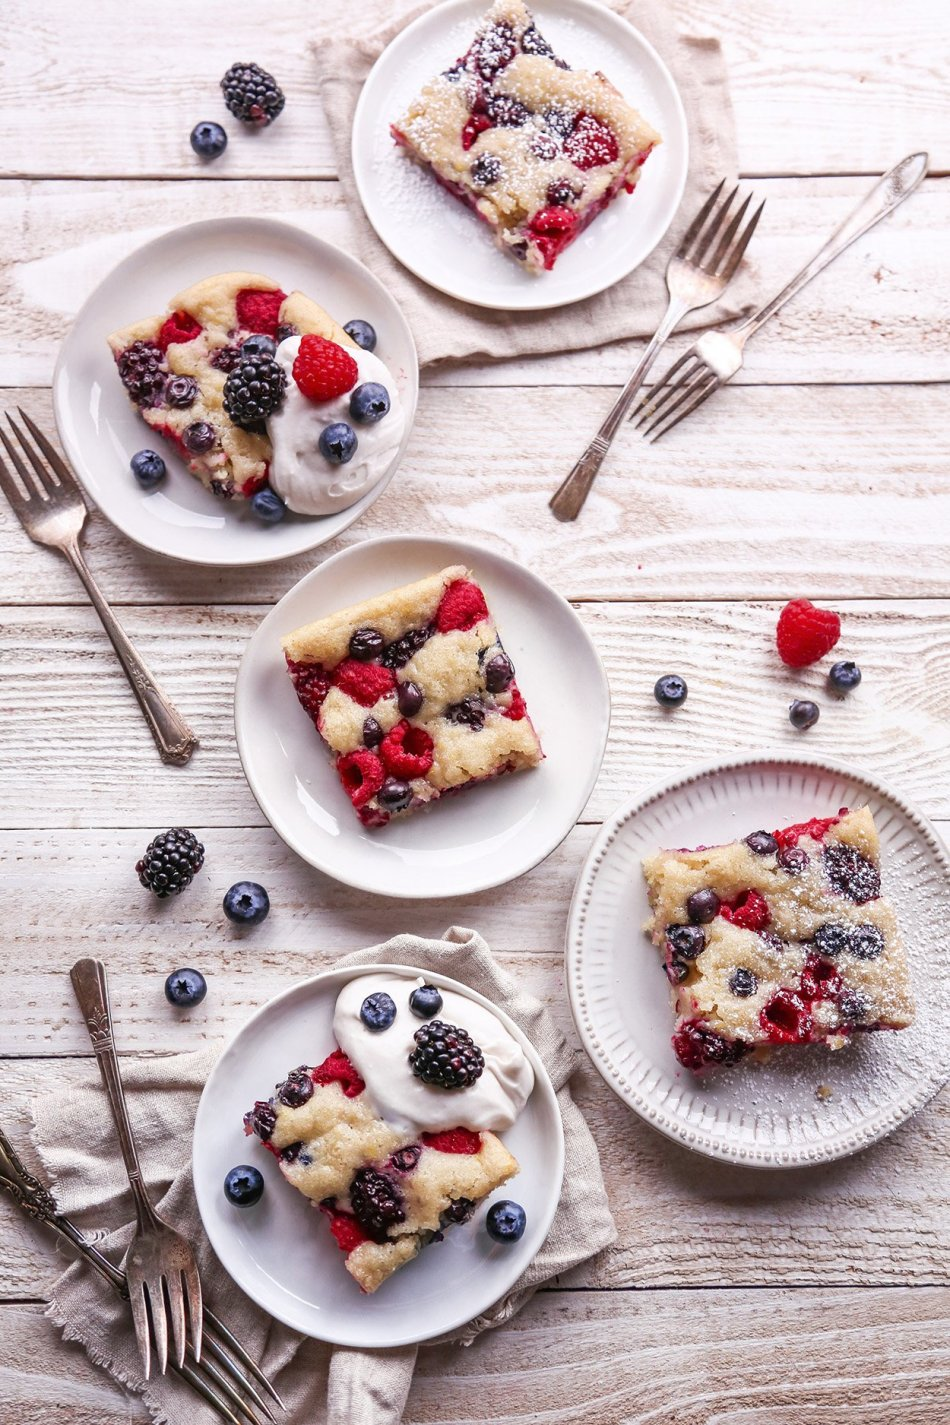 Easy Berry Sheet Cake   Free of gluten, dairy, eggs, and refined sugar, plus vegan friendly